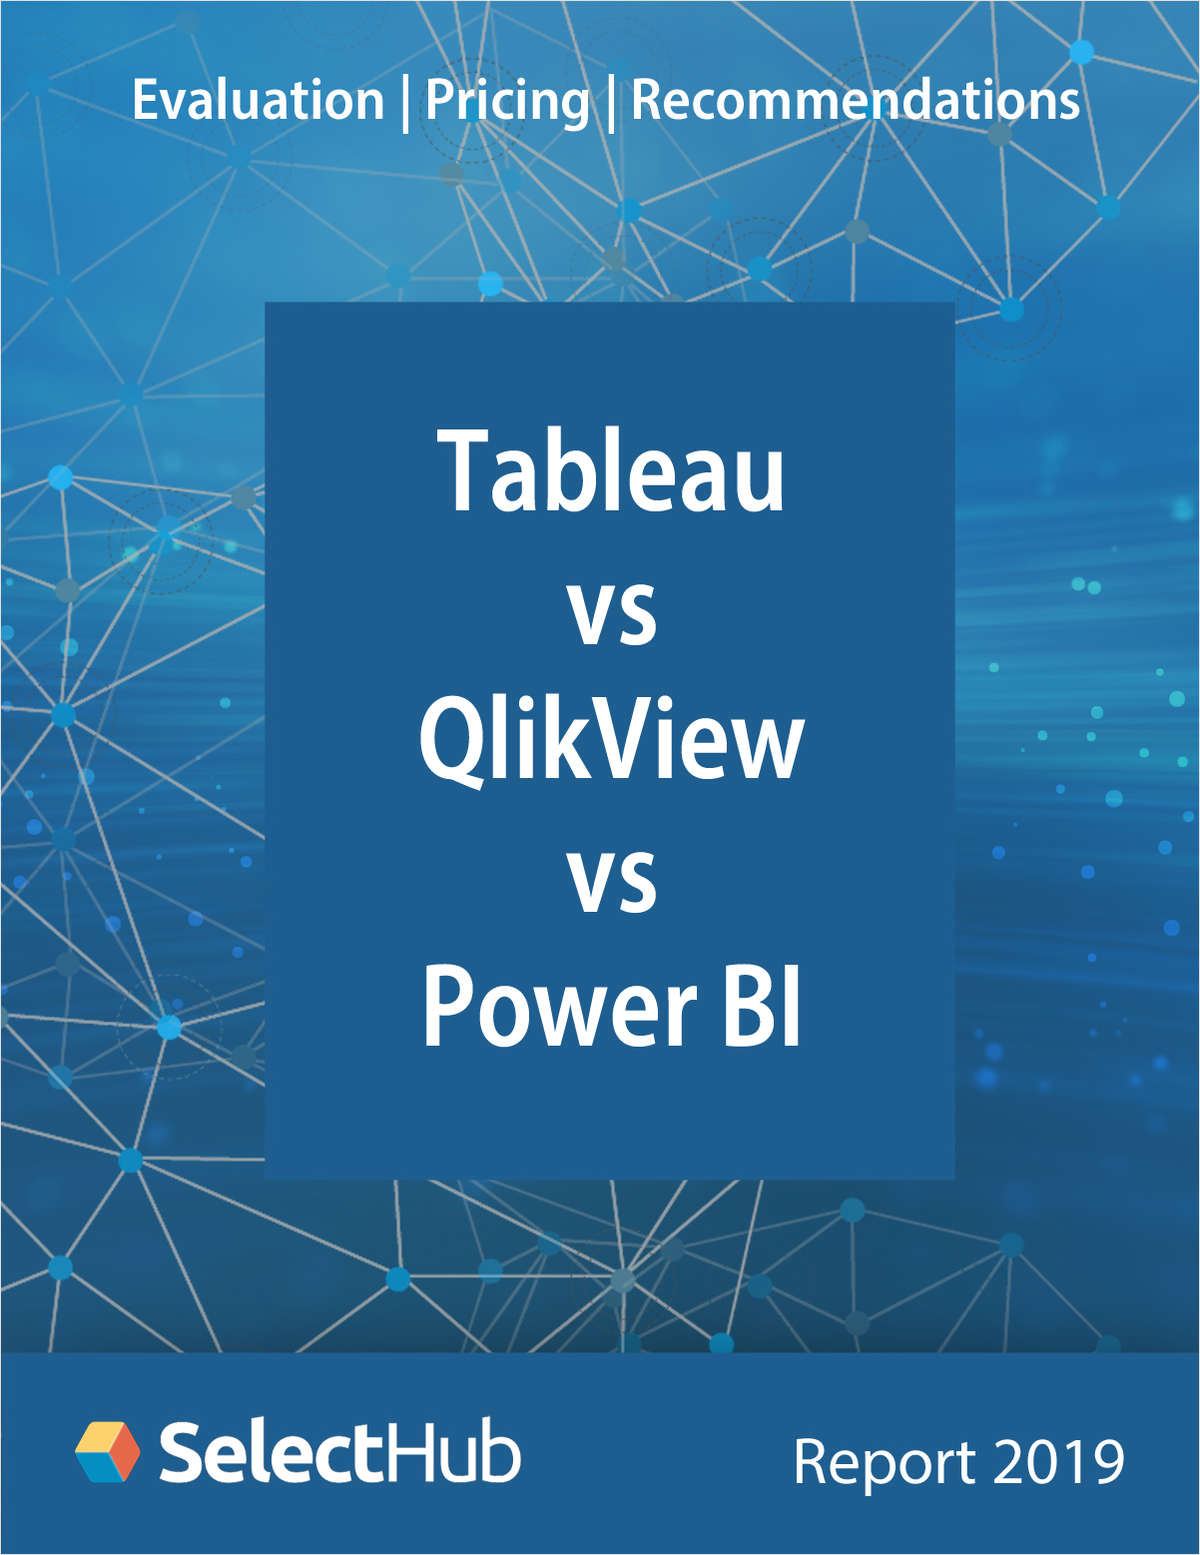 Tableau vs. QlikView vs. Power BI―Expert Evaluations, Pricing & Recommendations